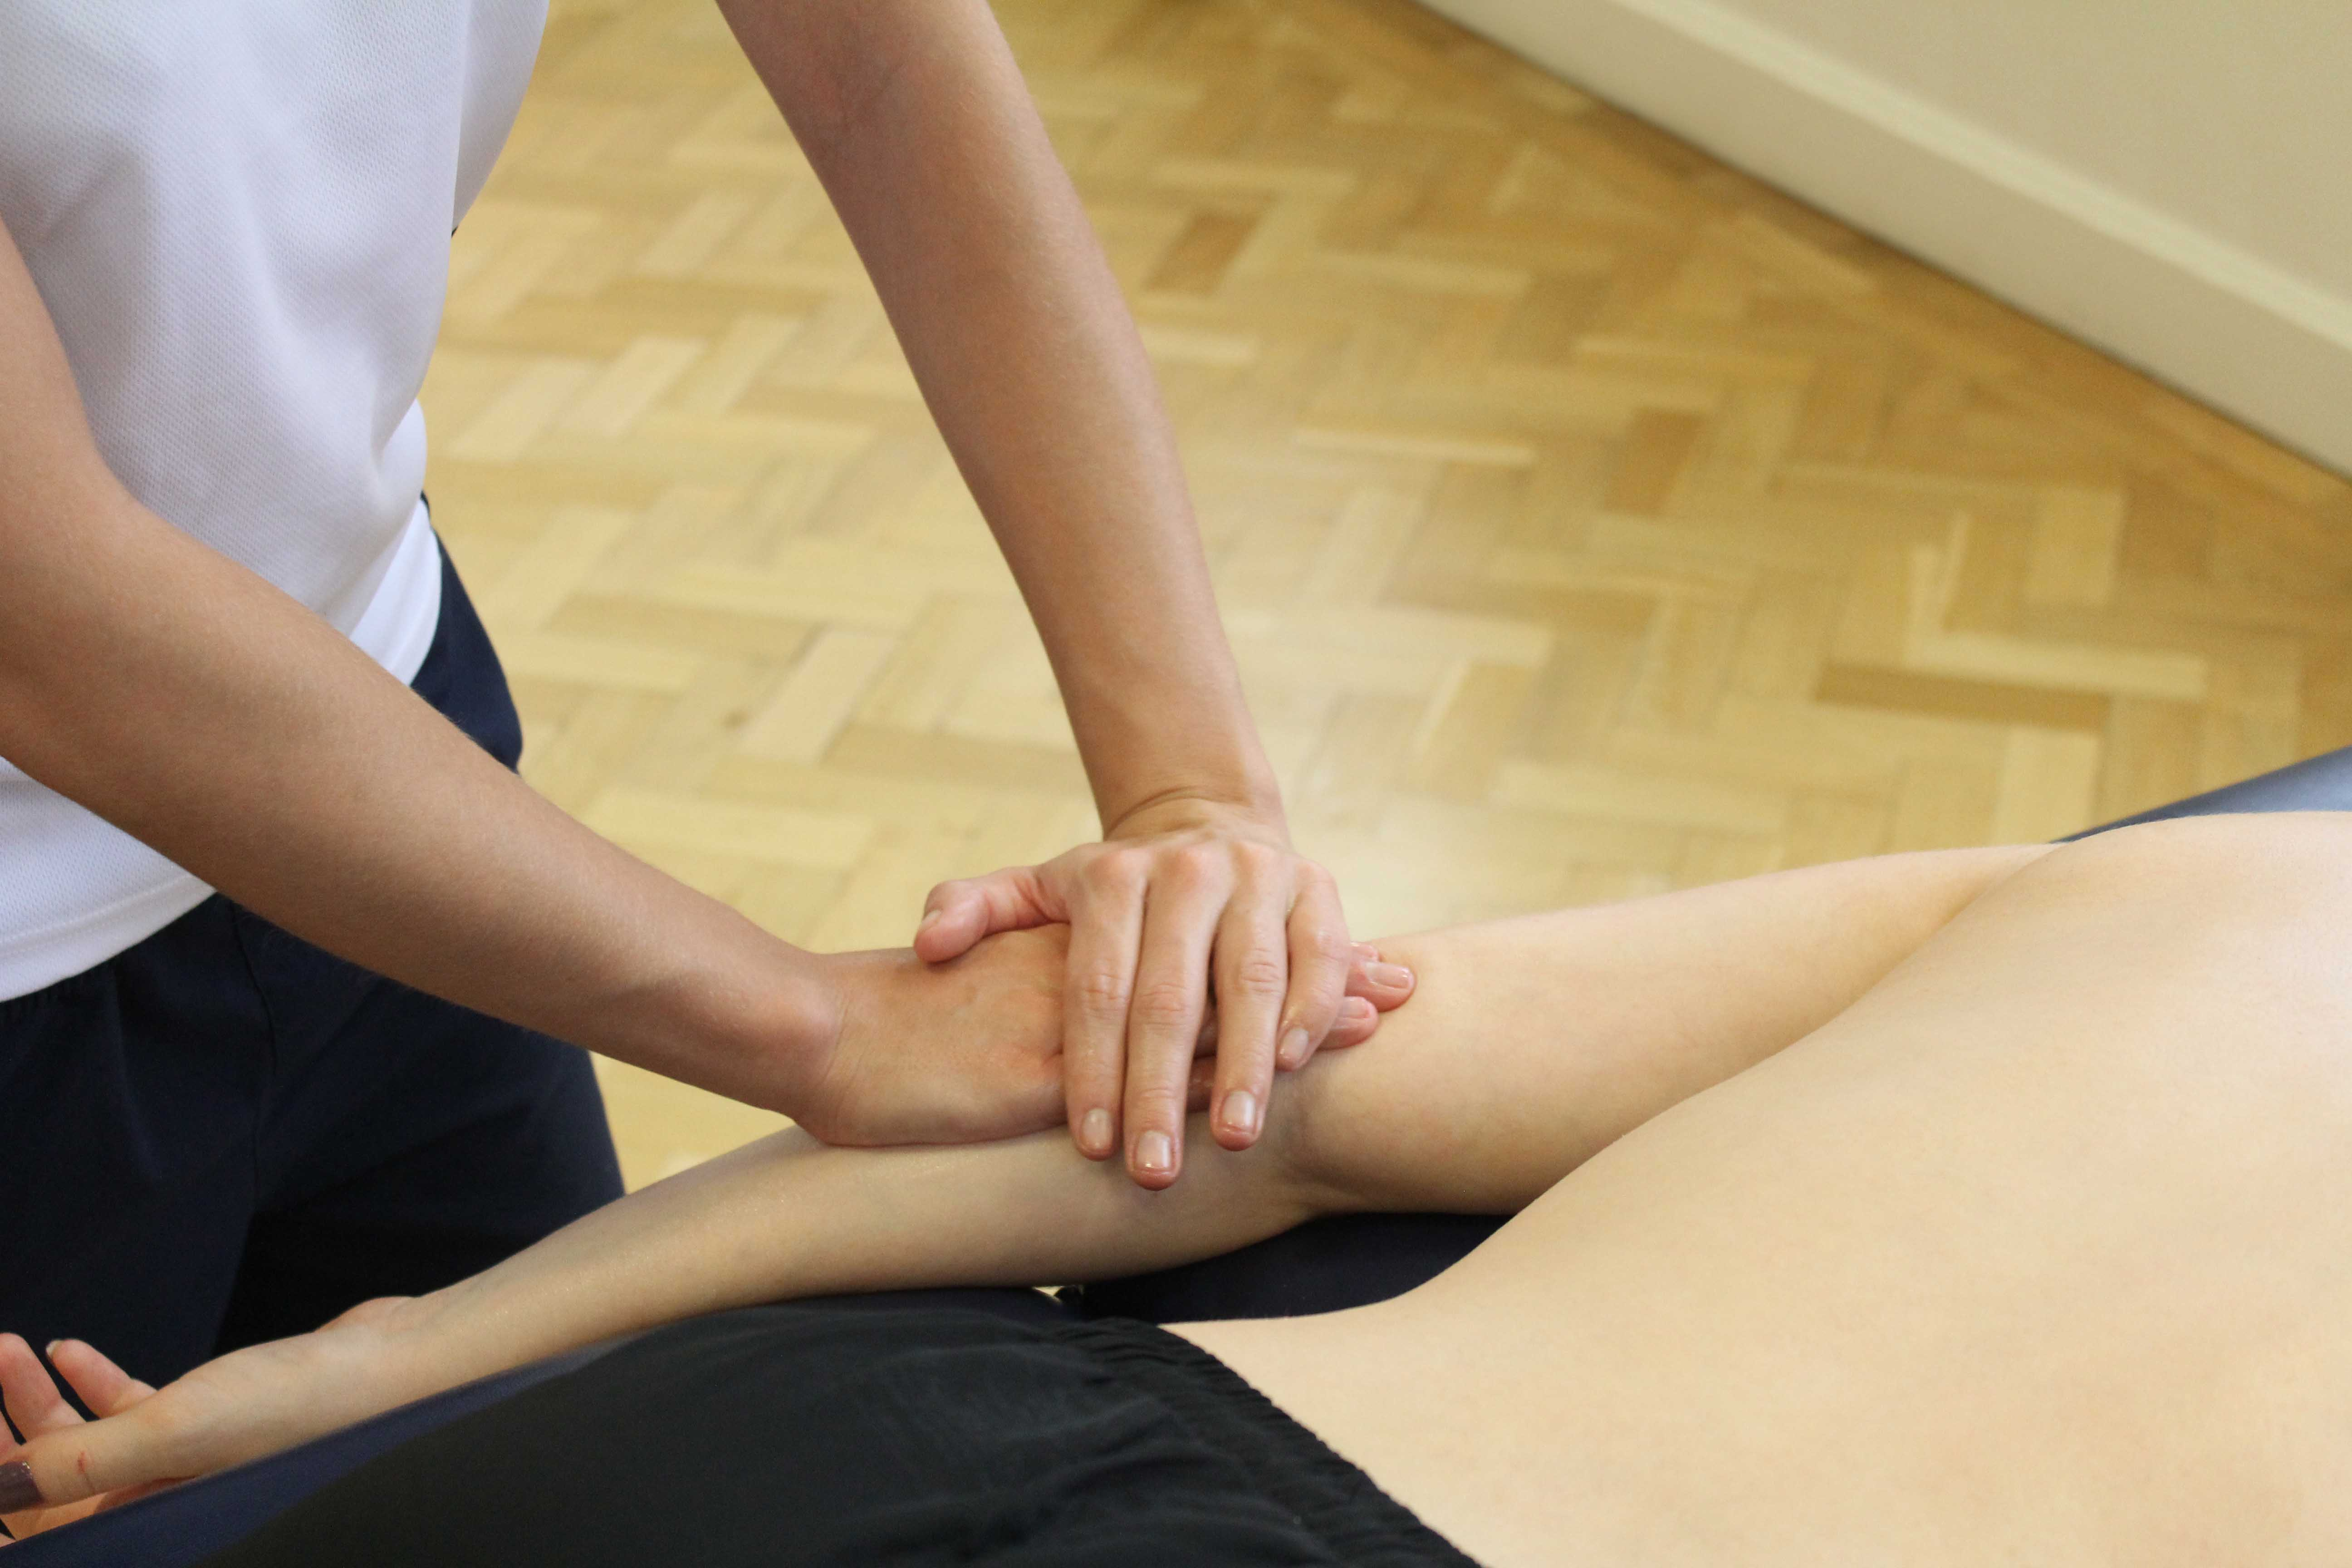 Soft tissue massage and mobilisation of the connective tissues around the elbow joint.